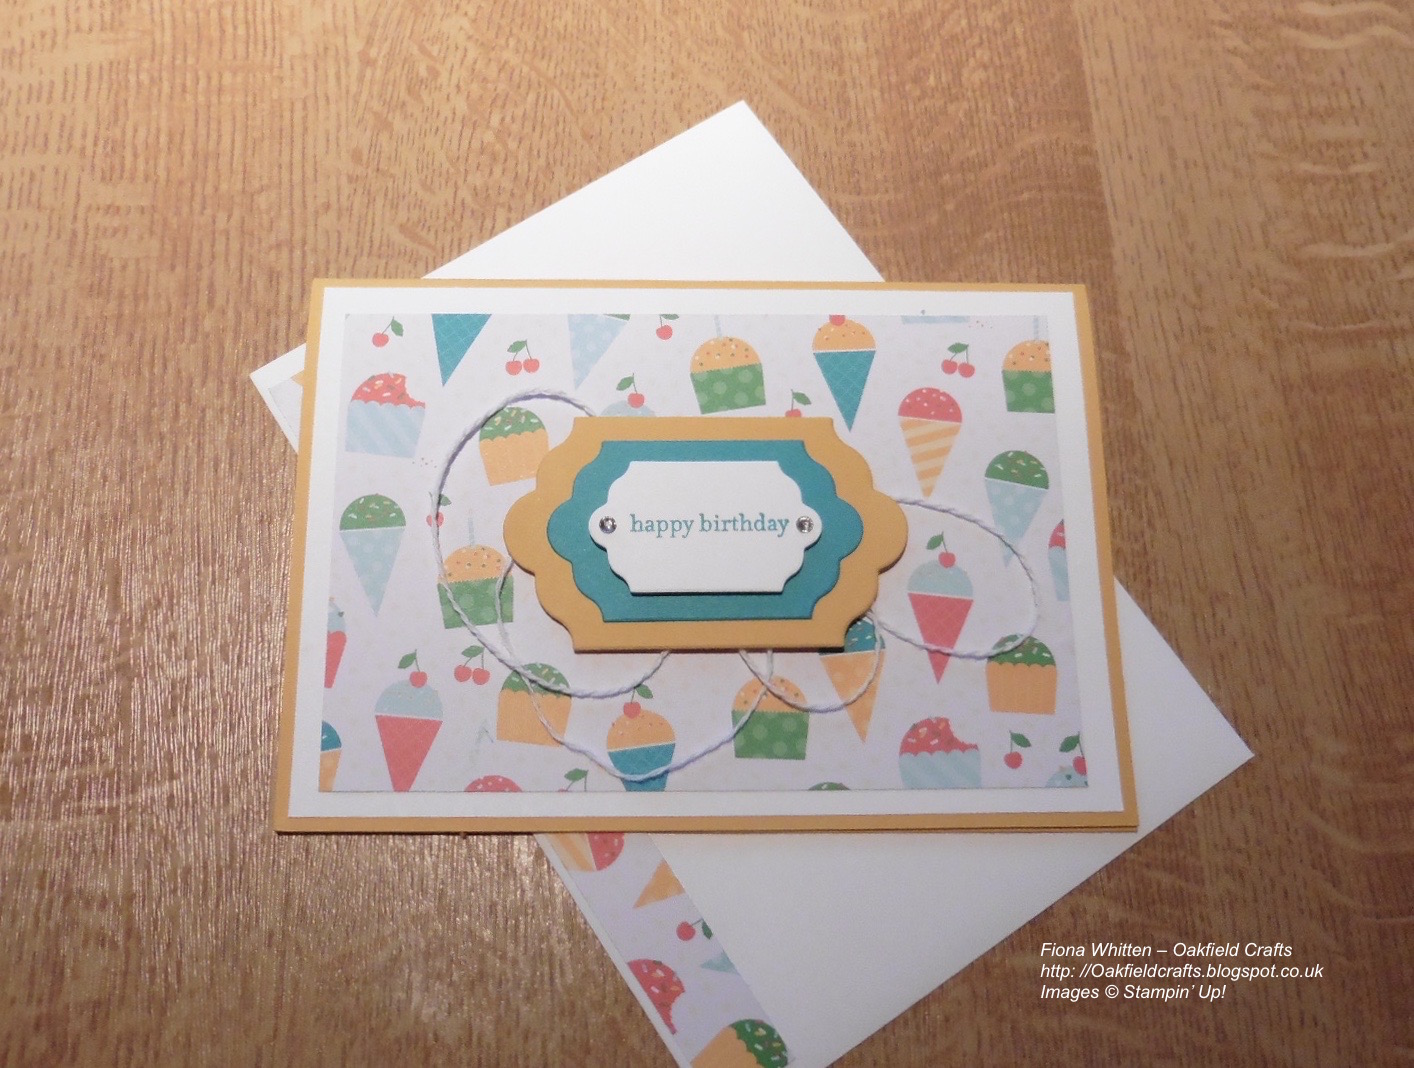 Oakfield crafts quick and simple cherry on top birthday cards quick and simple cherry on top birthday cards bookmarktalkfo Choice Image